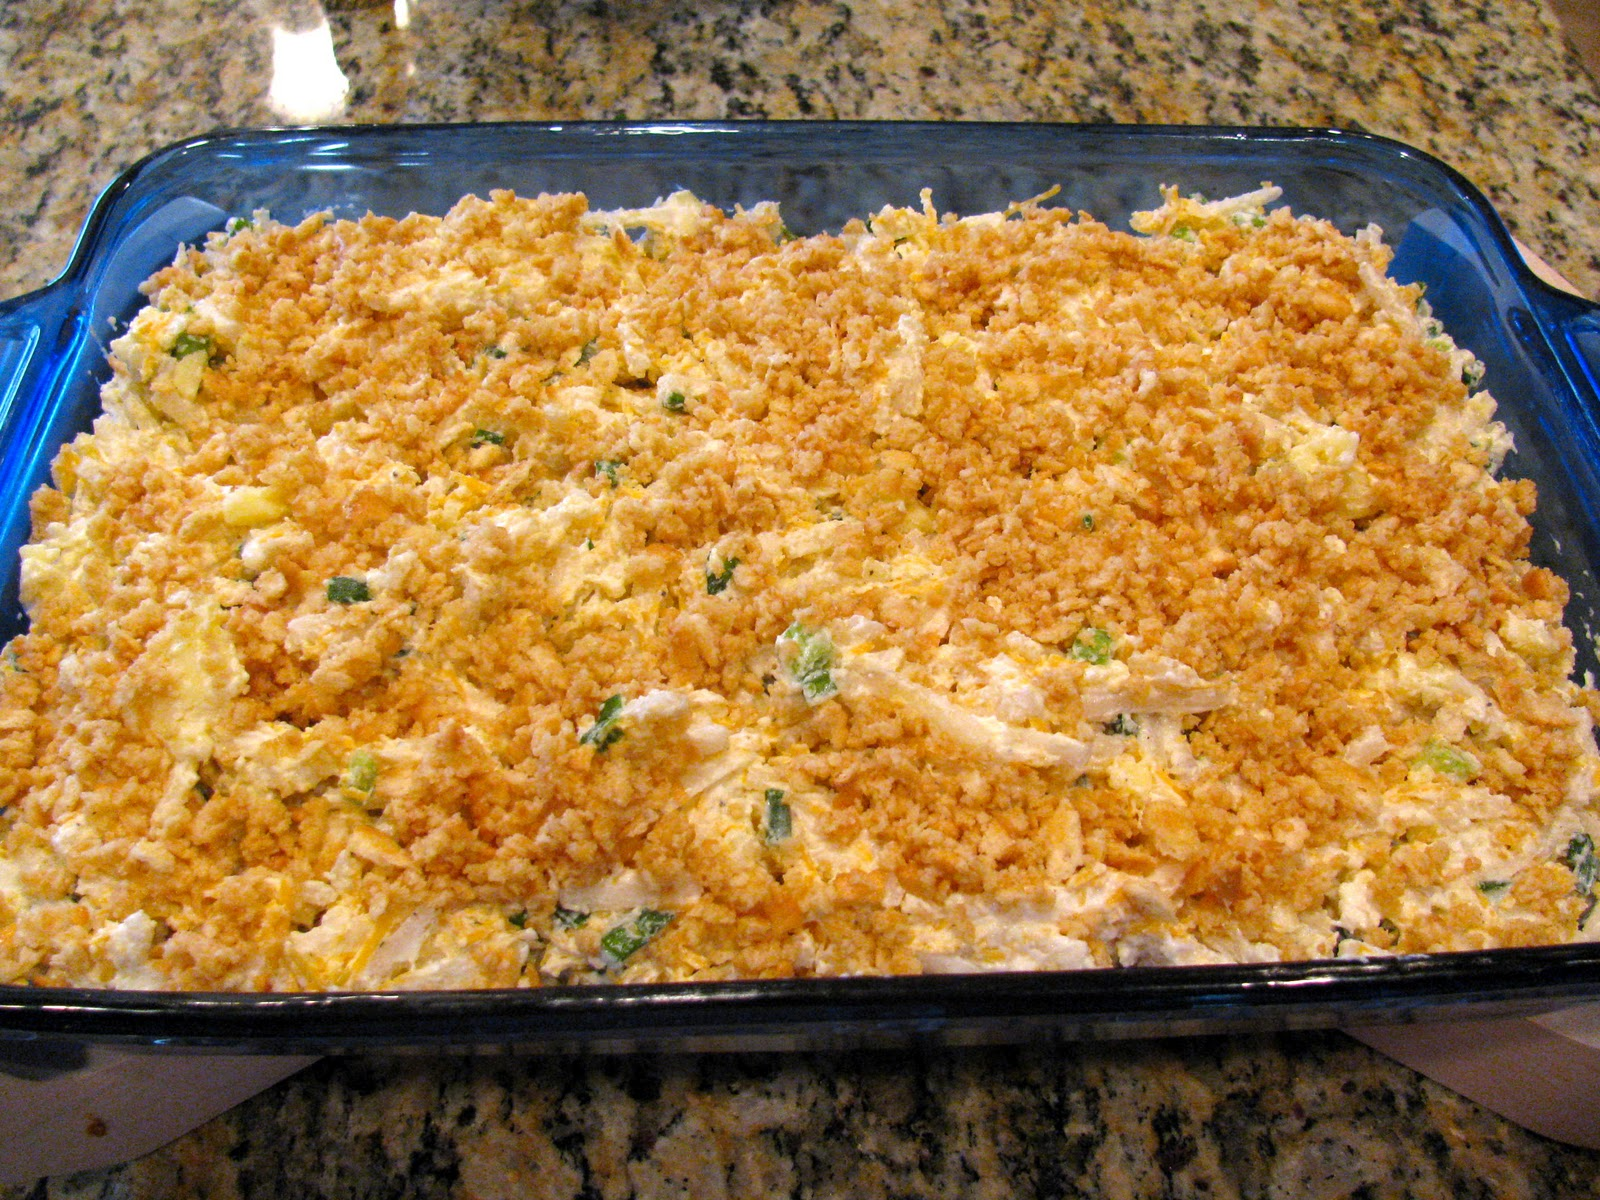 Rita's Recipes: Cheesy Potato Casserole